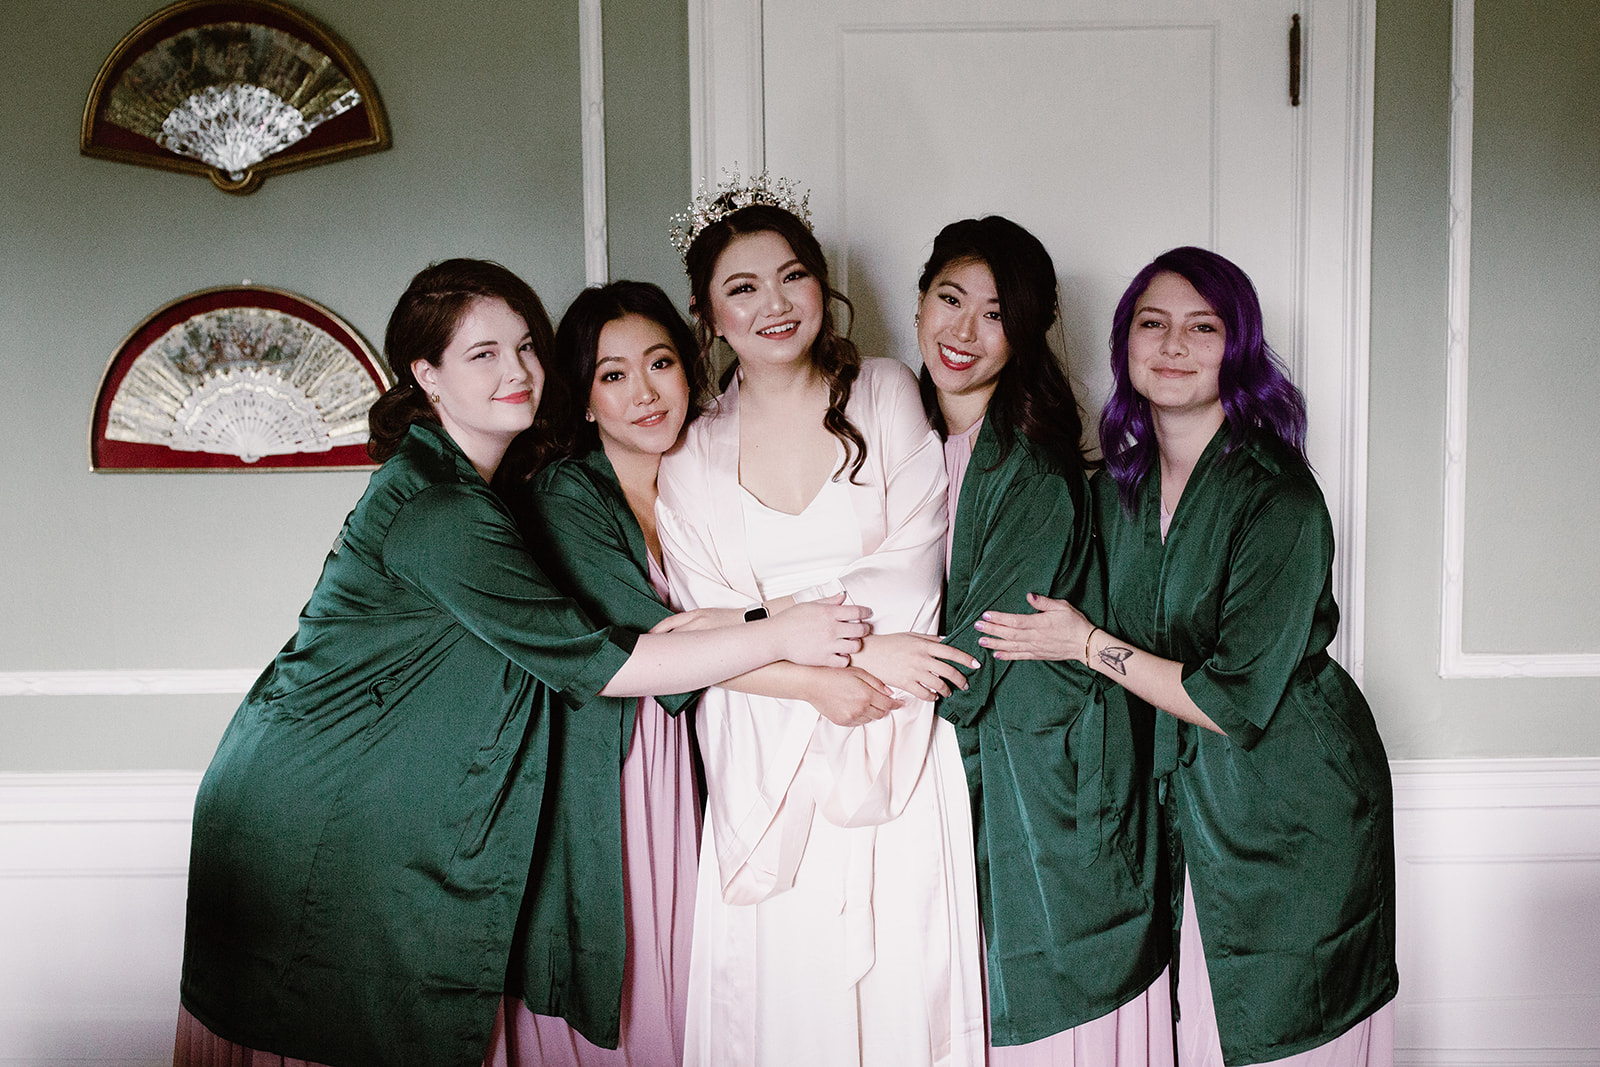 bridesmaid photoshoot.jpg